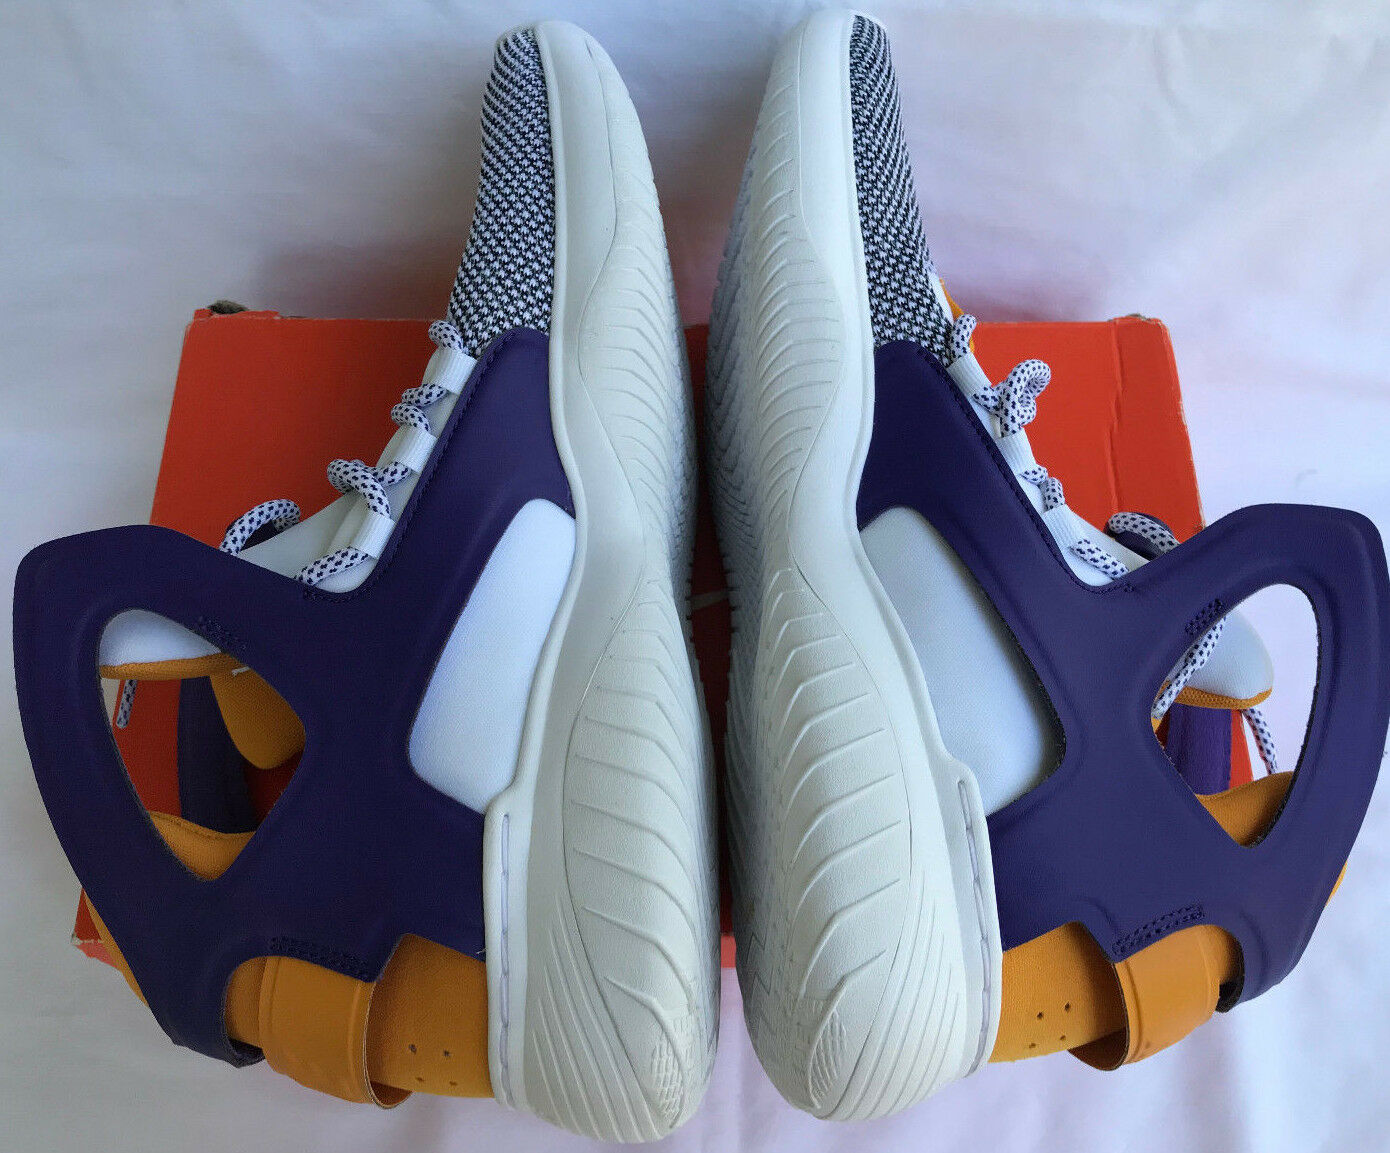 Nike Air Flight Huarache Ultra 880856-102 Gold Shoes Lakers Basketball Shoes Gold Men's 11 63adc3